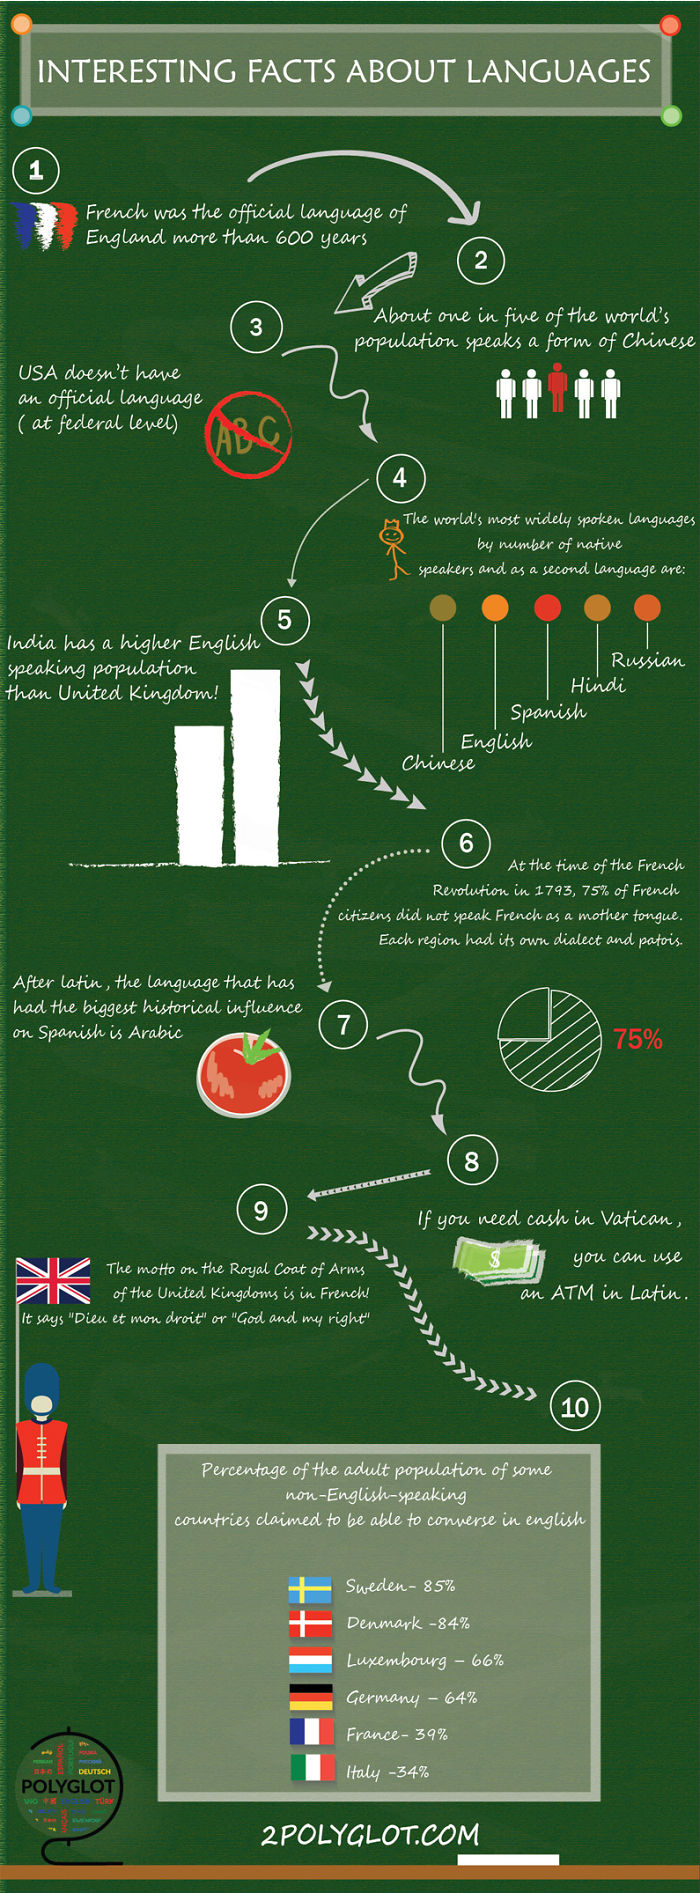 Interesting Facts About Languages